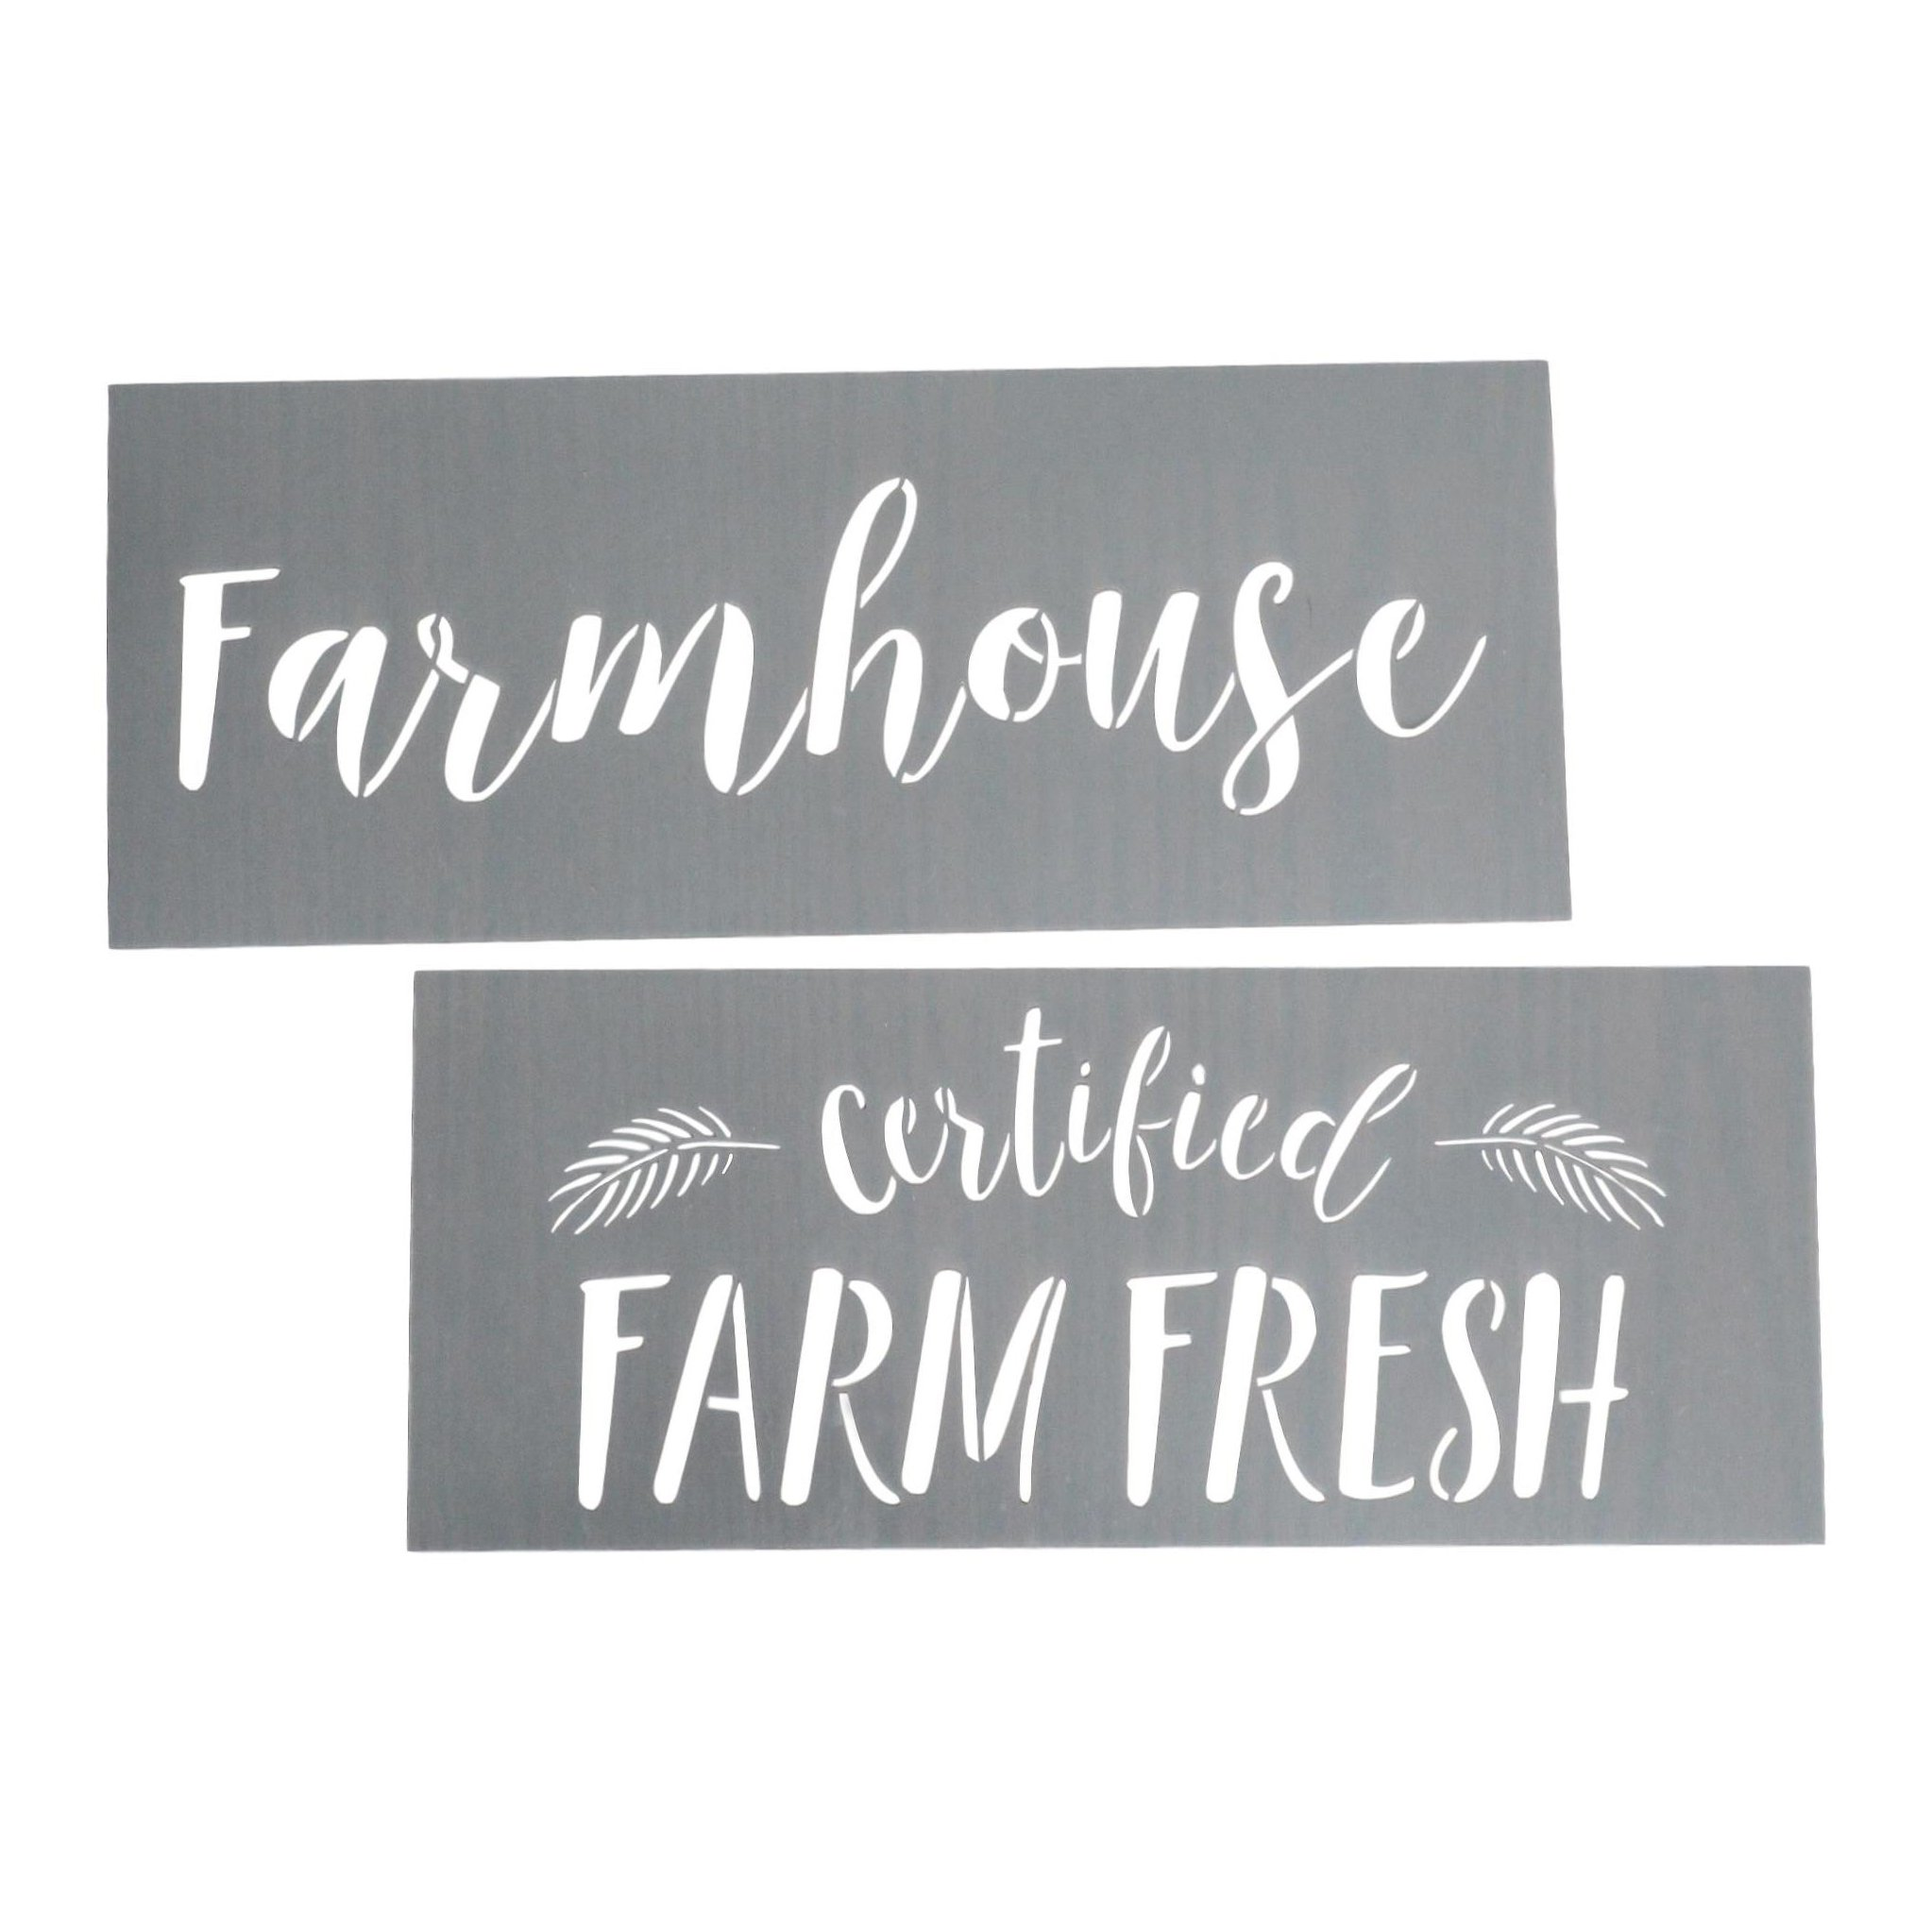 Farmhouse, Certified Farm Fresh Calligraphy Stencilling Set - Country Farmhouse Word Stencils – Set of 2 Reusable Sign Stencils – Easy Rustic DIY Décor